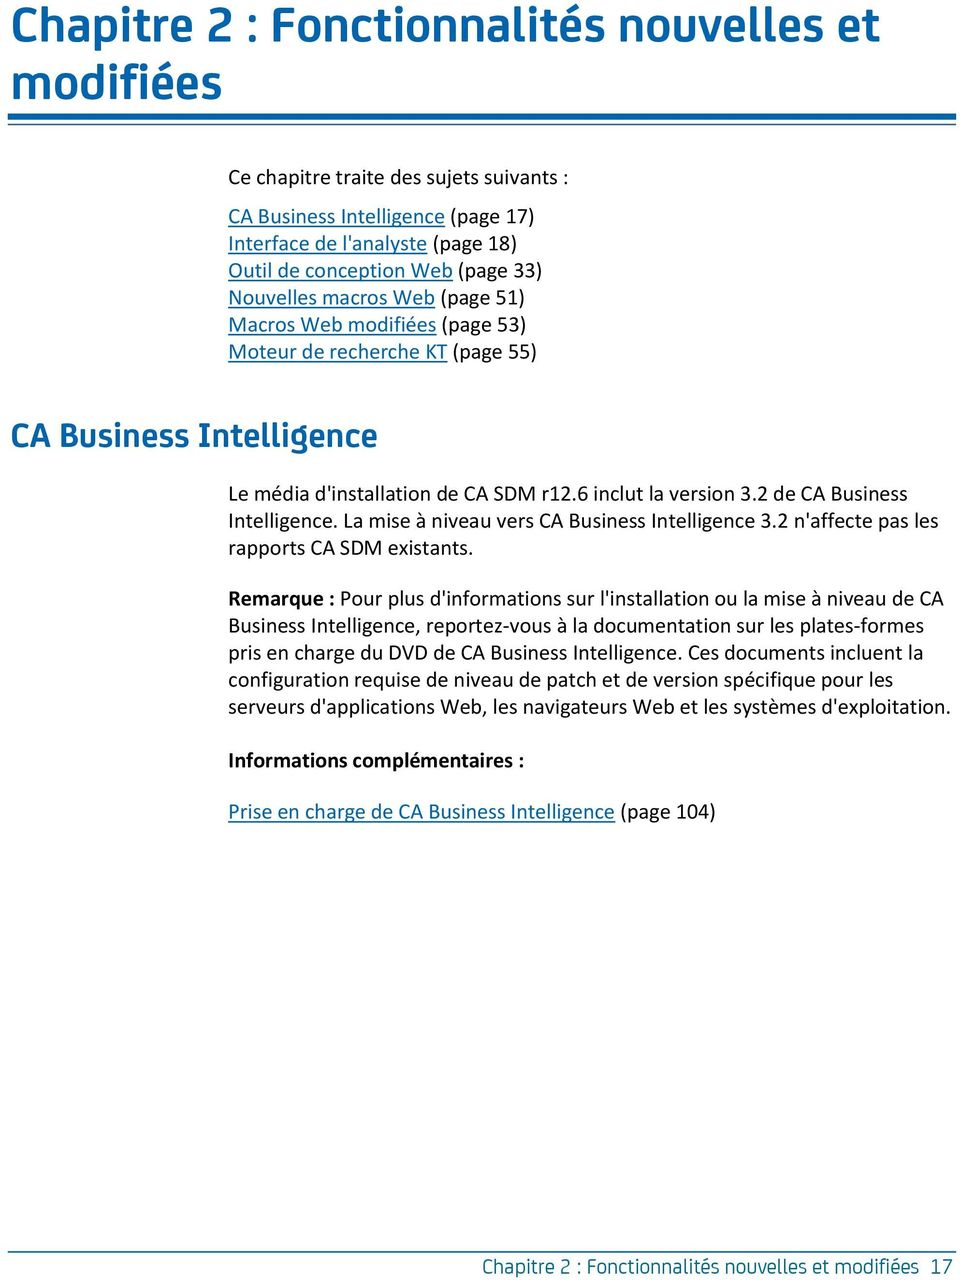 2 de CA Business Intelligence. La mise à niveau vers CA Business Intelligence 3.2 n'affecte pas les rapports CA SDM existants.